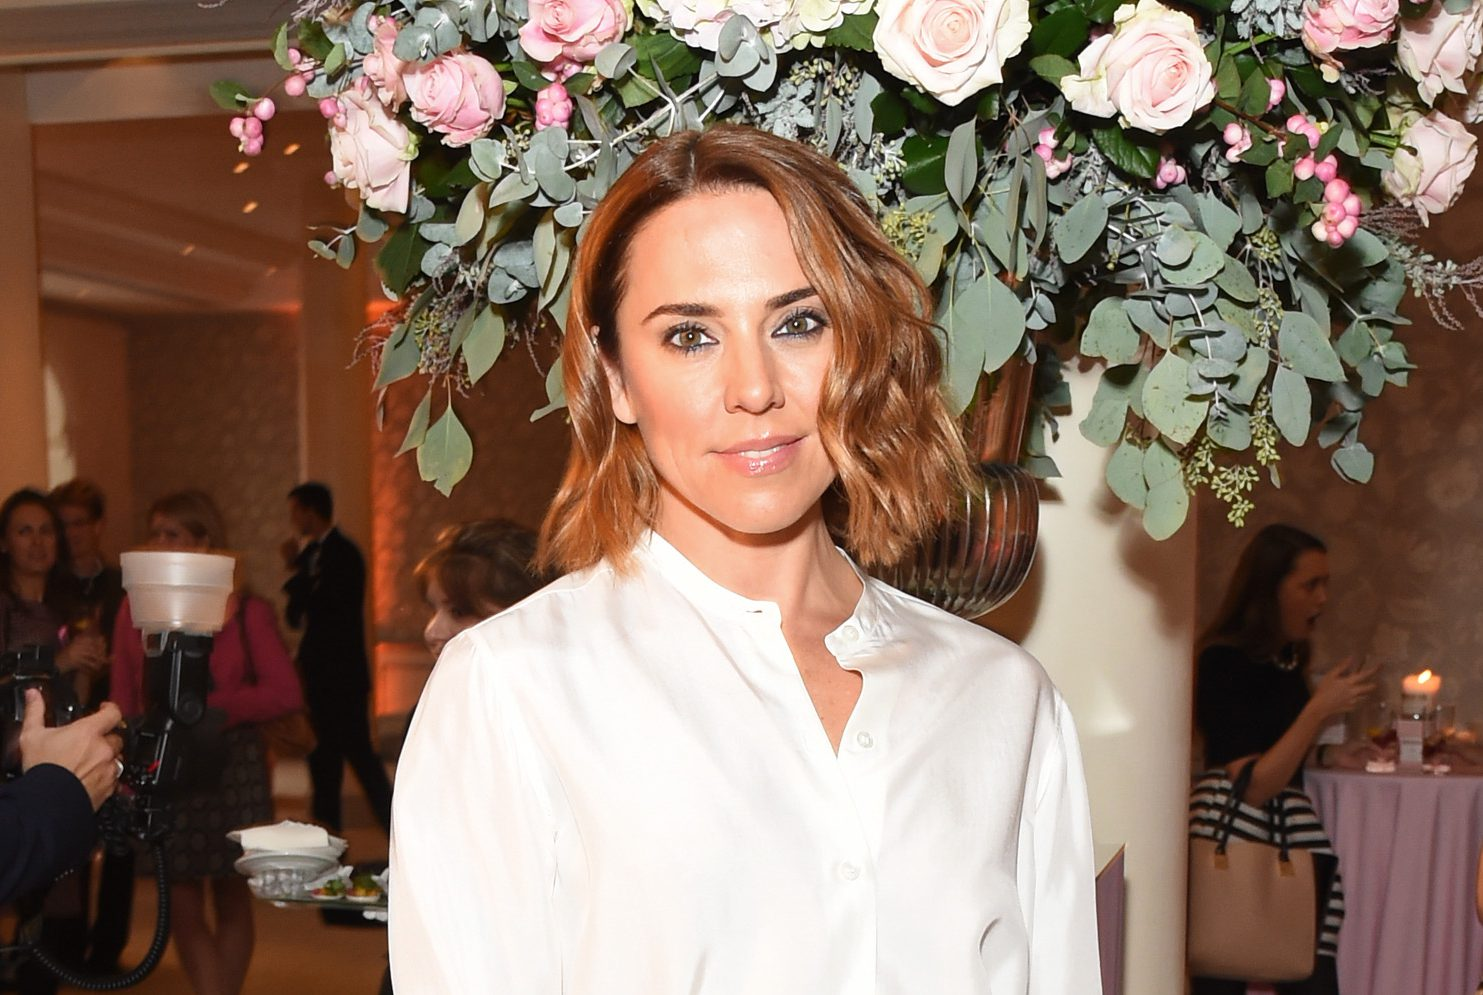 Mel C says life as a Spice Girl caused 'depression', 'eating disorders' and 'obsessive over-exercising'